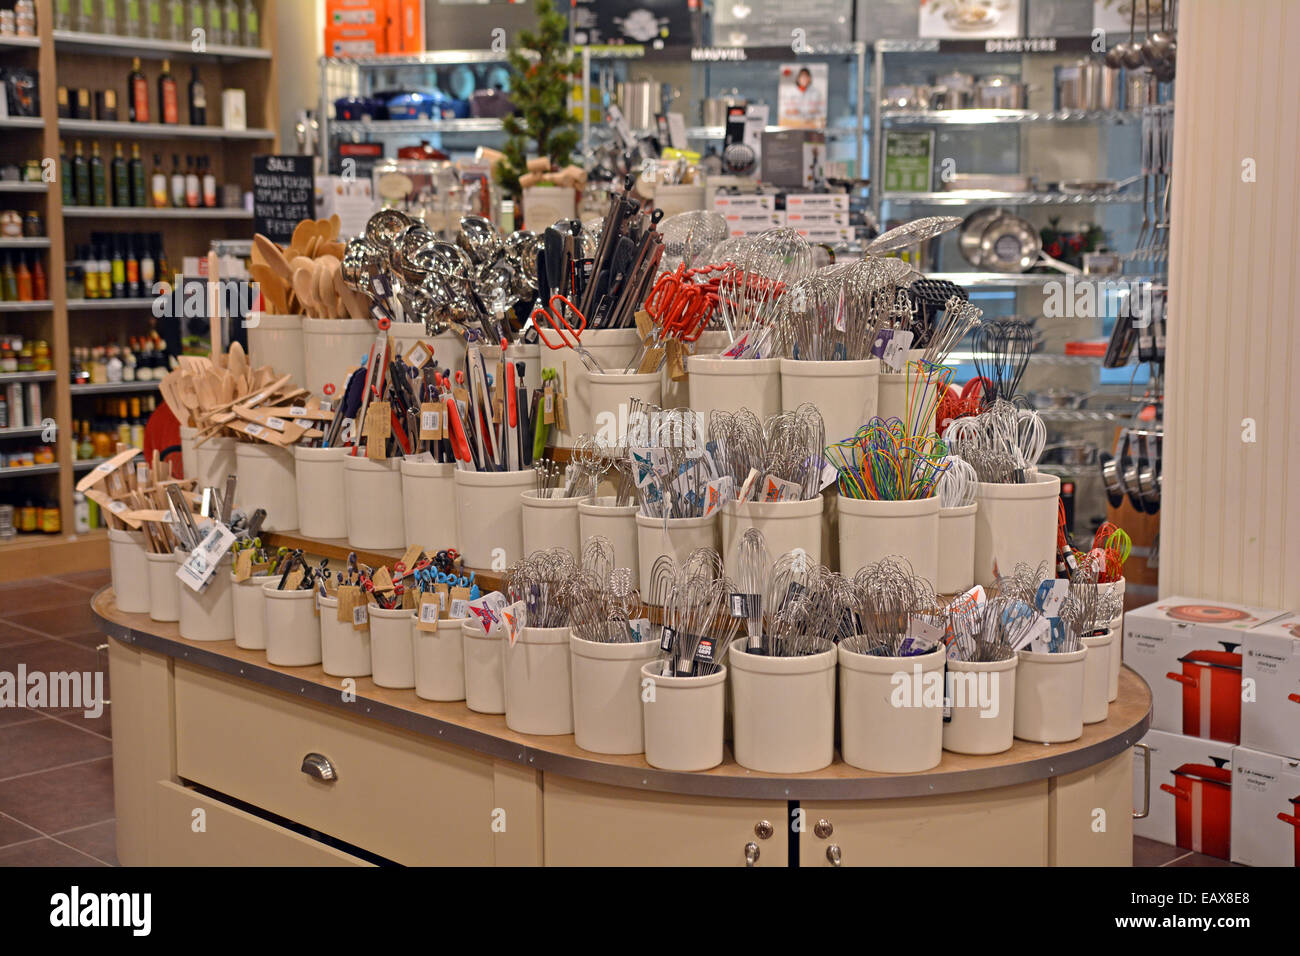 A view of cooking utensils for sale at the SUR LA TABLE store in Roosevelt Field Mall in Garden City, Long Island, - Stock Image